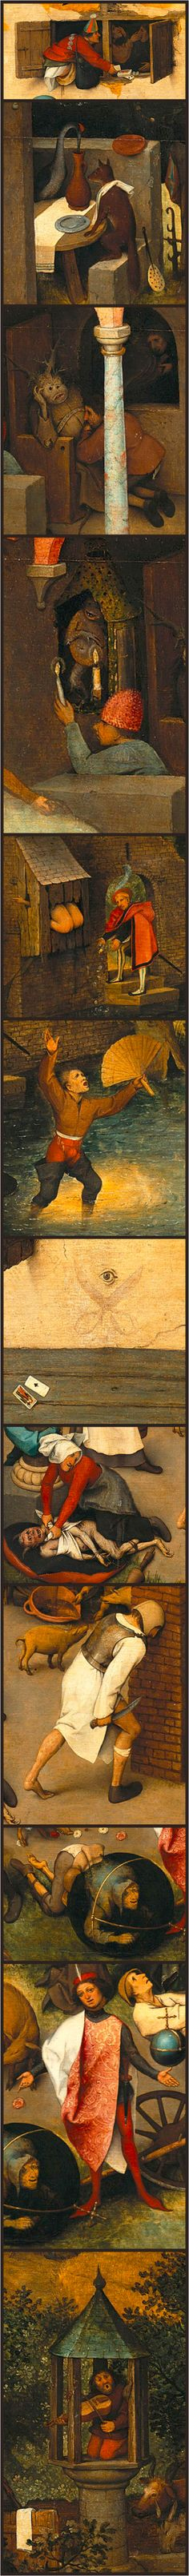 details from The Netherlandish Proverbs (1559) by Pieter Bruegel the Elder. [for full, zoomable picture, go to: http://www.google.com/culturalinstitute/asset-viewer/the-dutch-proverbs/WwG8mD89xbELbQ?hl=en ]